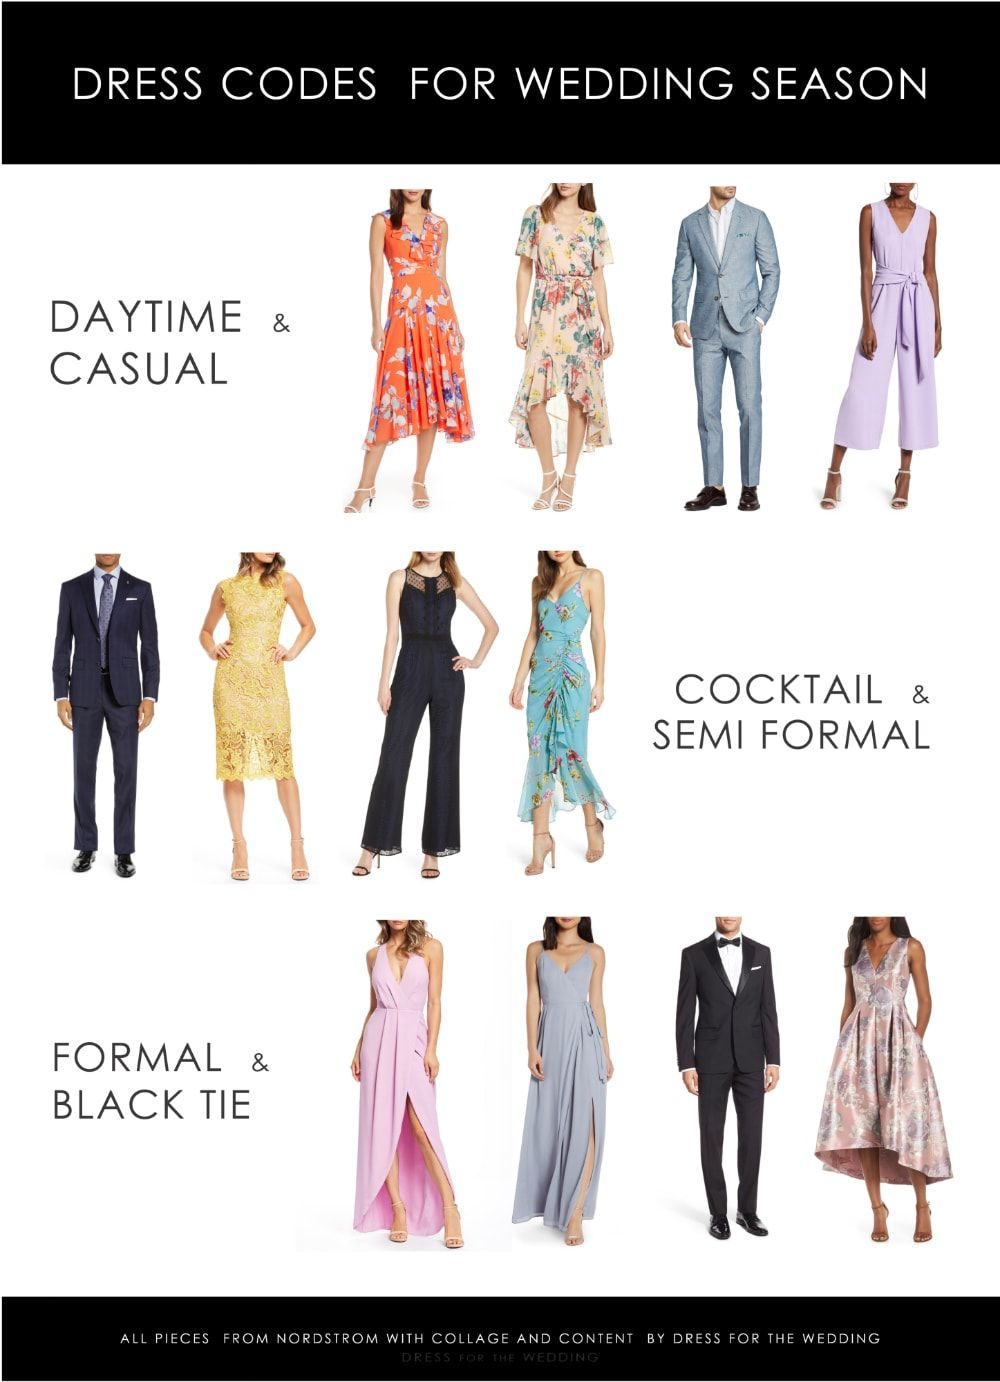 Getting Ready For The 2019 Wedding Season With Nordstrom Dress For The Wedding Casual Wedding Attire Formal Wedding Guest Dress Cocktail Wedding Attire